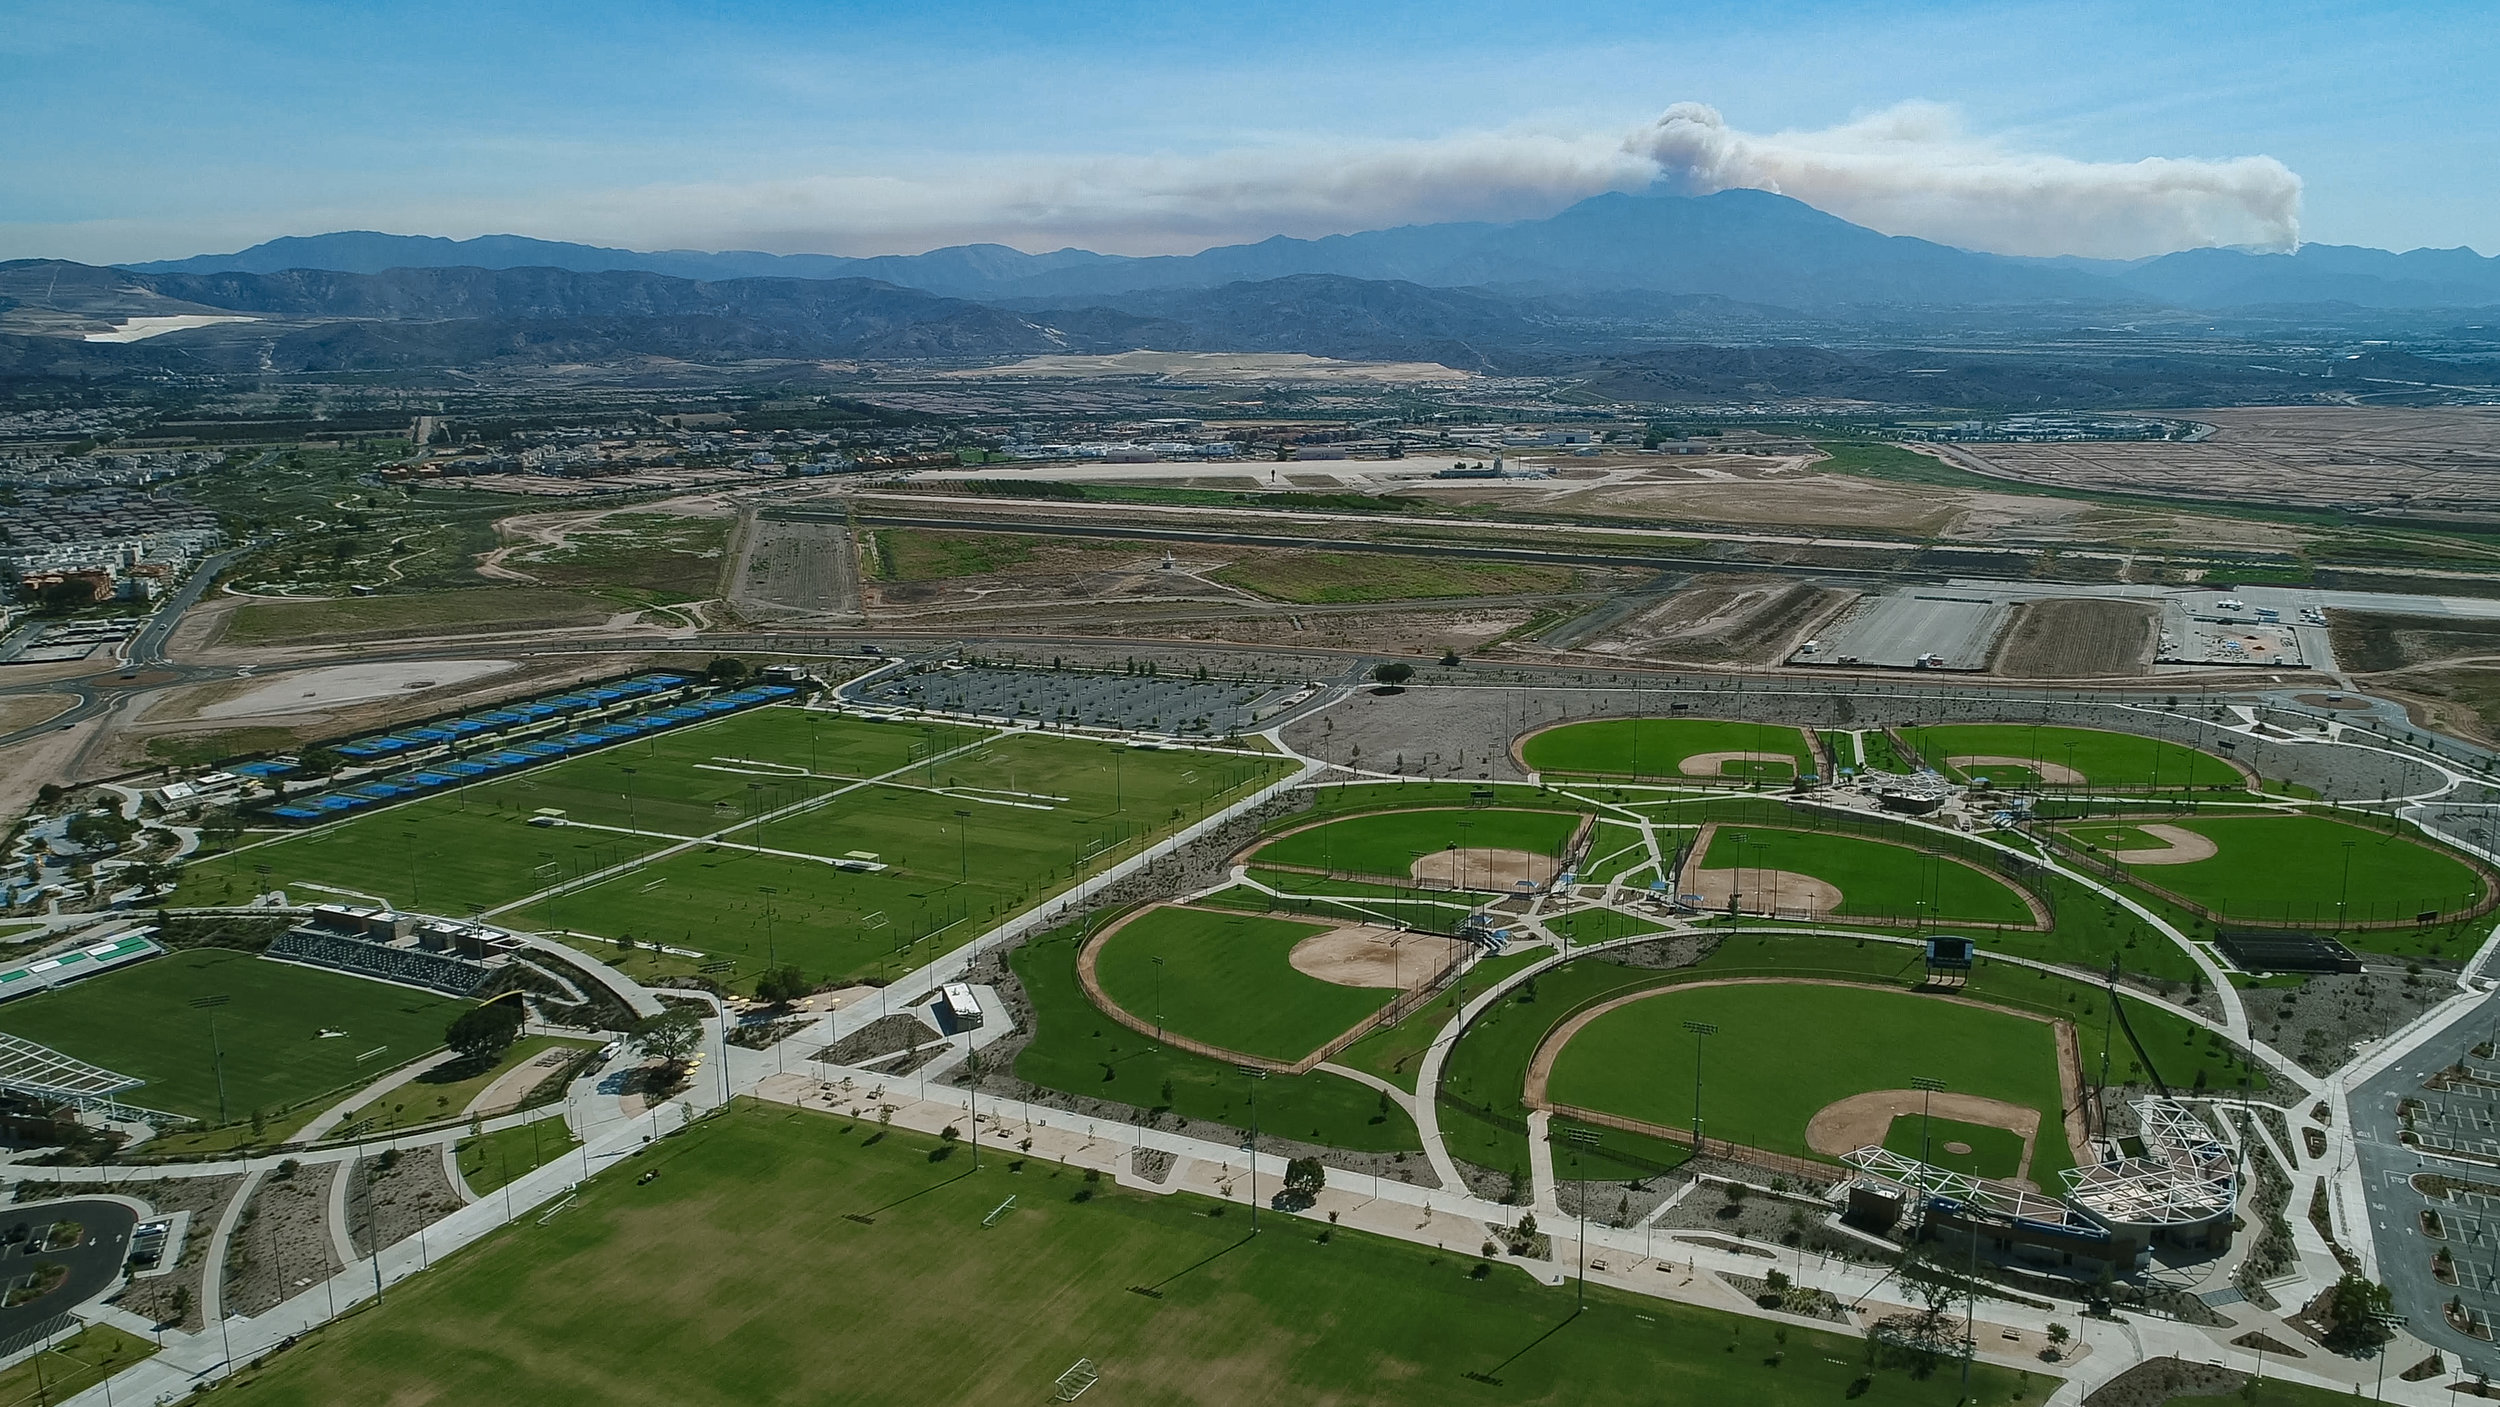 Full OCGP Sports Park Jeffrey L. Bruce 4K_2.jpg